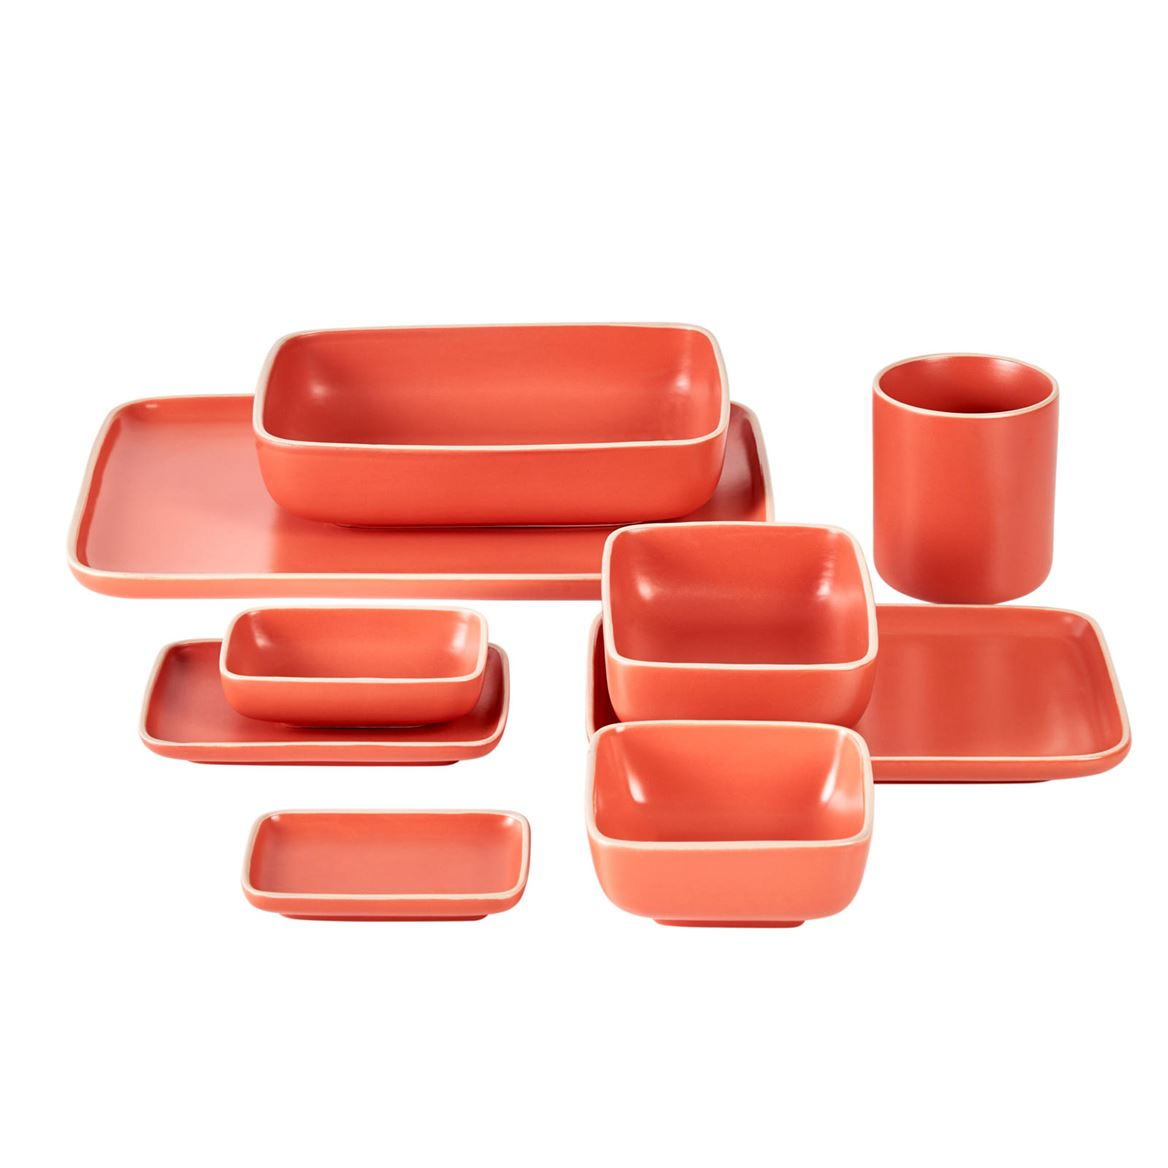 ELEMENTS Assiette orange Larg. 10 x Long. 14,2 cm_elements-assiette-orange-larg--10-x-long--14,2-cm